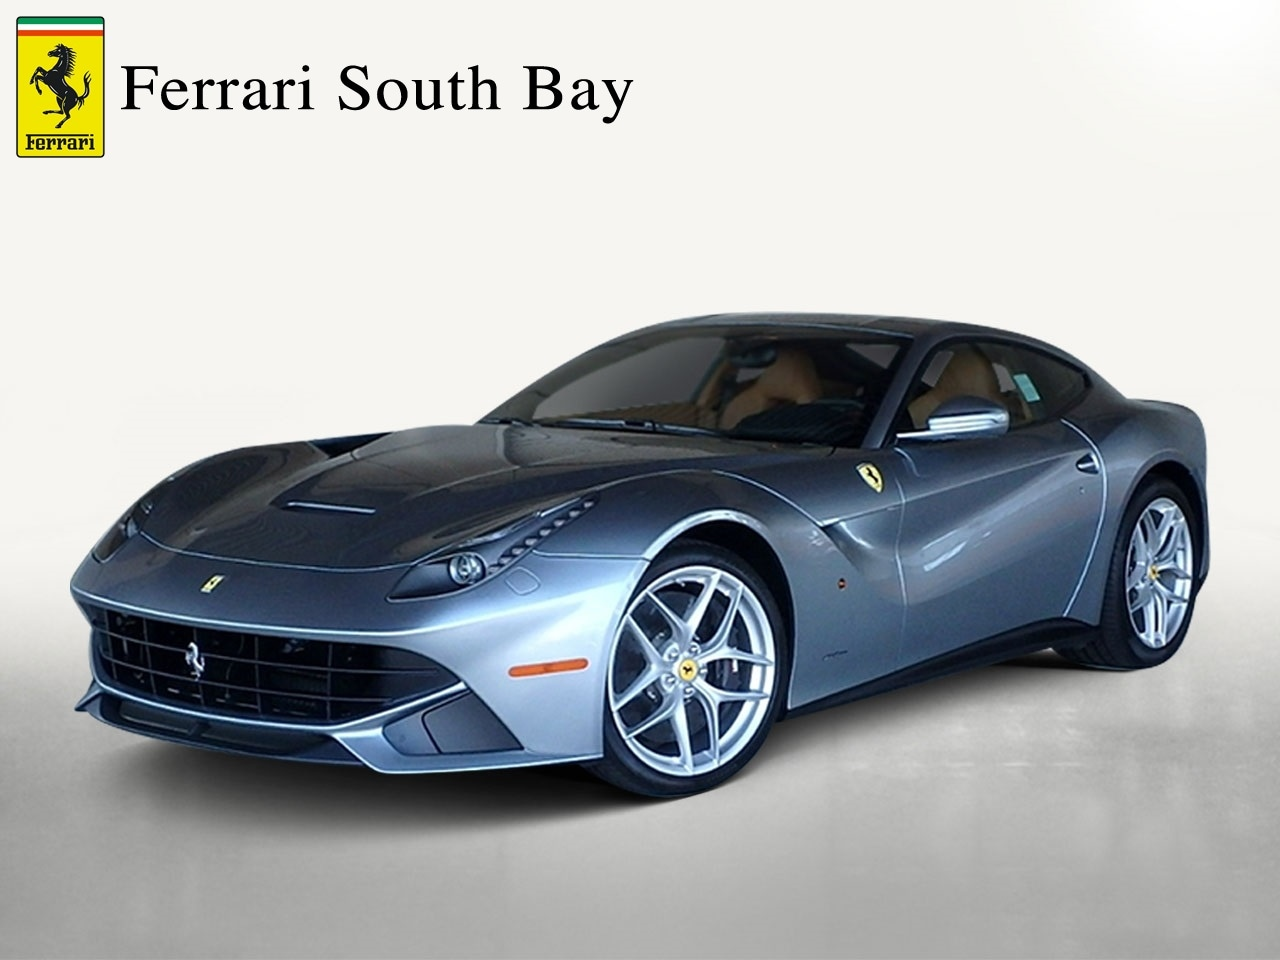 Certified Pre-Owned 2015 Ferrari F12 Berlinetta Coupe For Sale Beverly Hills, CA